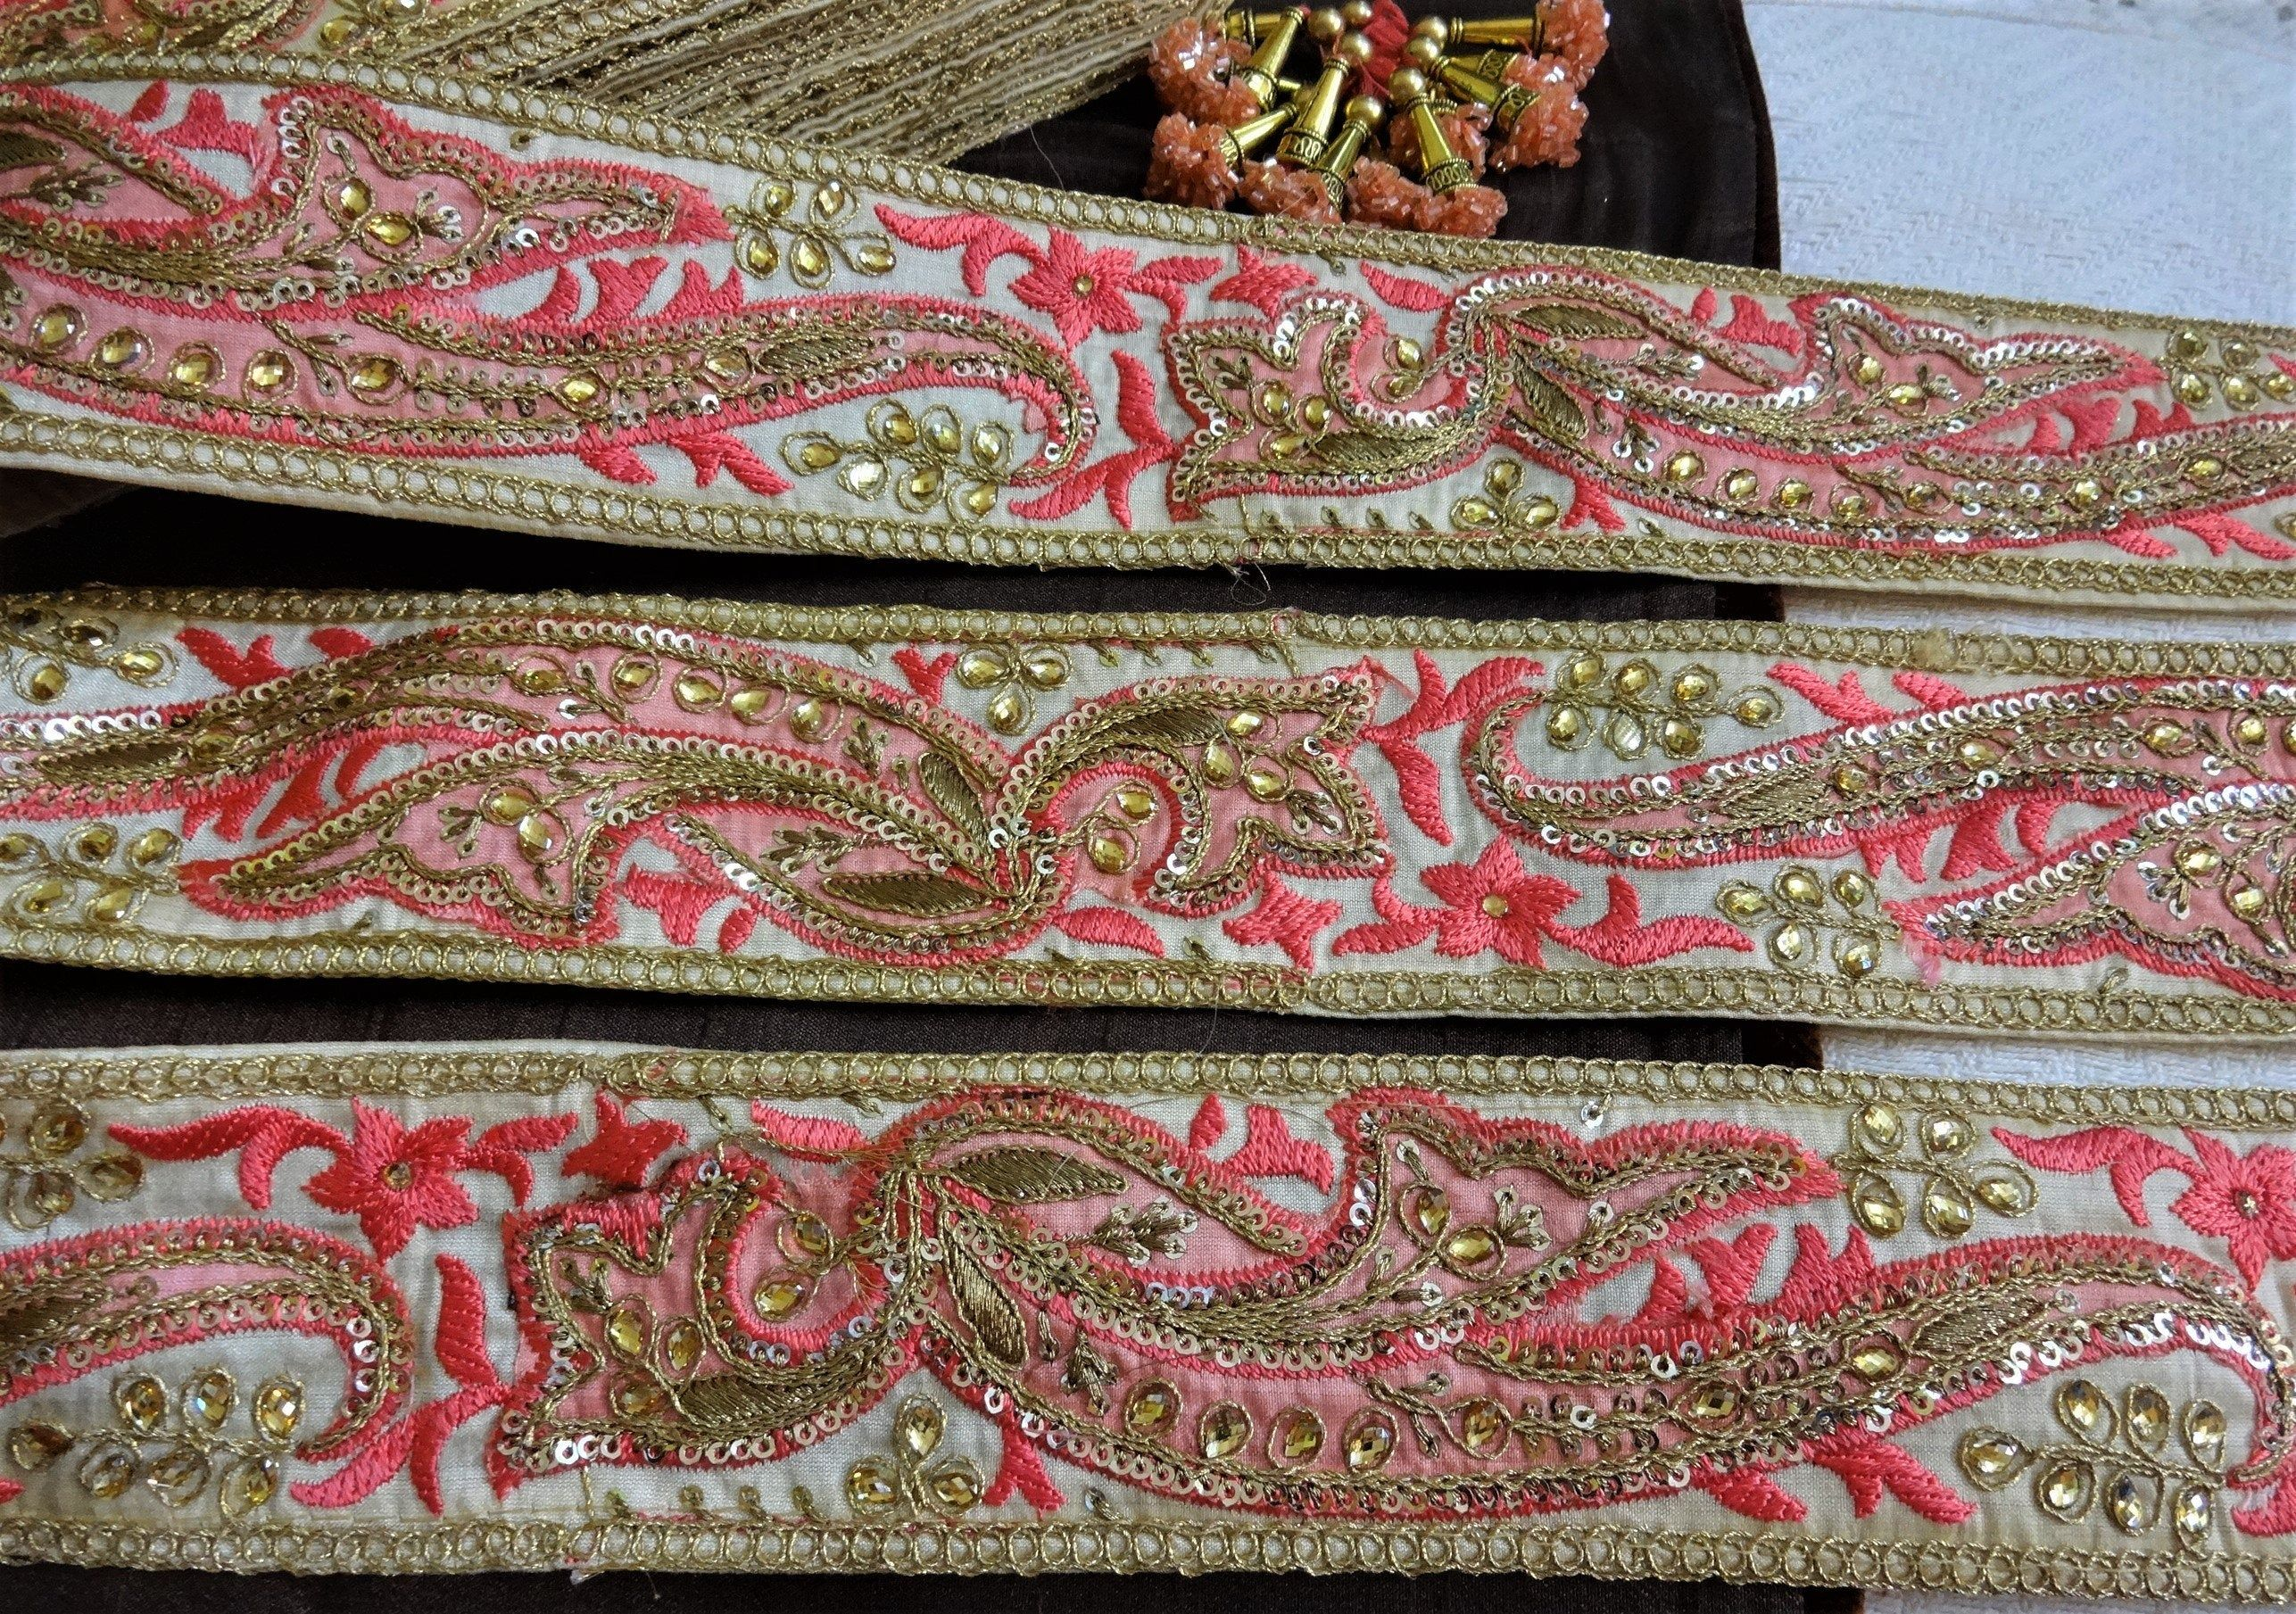 1yard Beads Sequins Ribbon Embroidery Lace Trim for DIY Garments Decoration